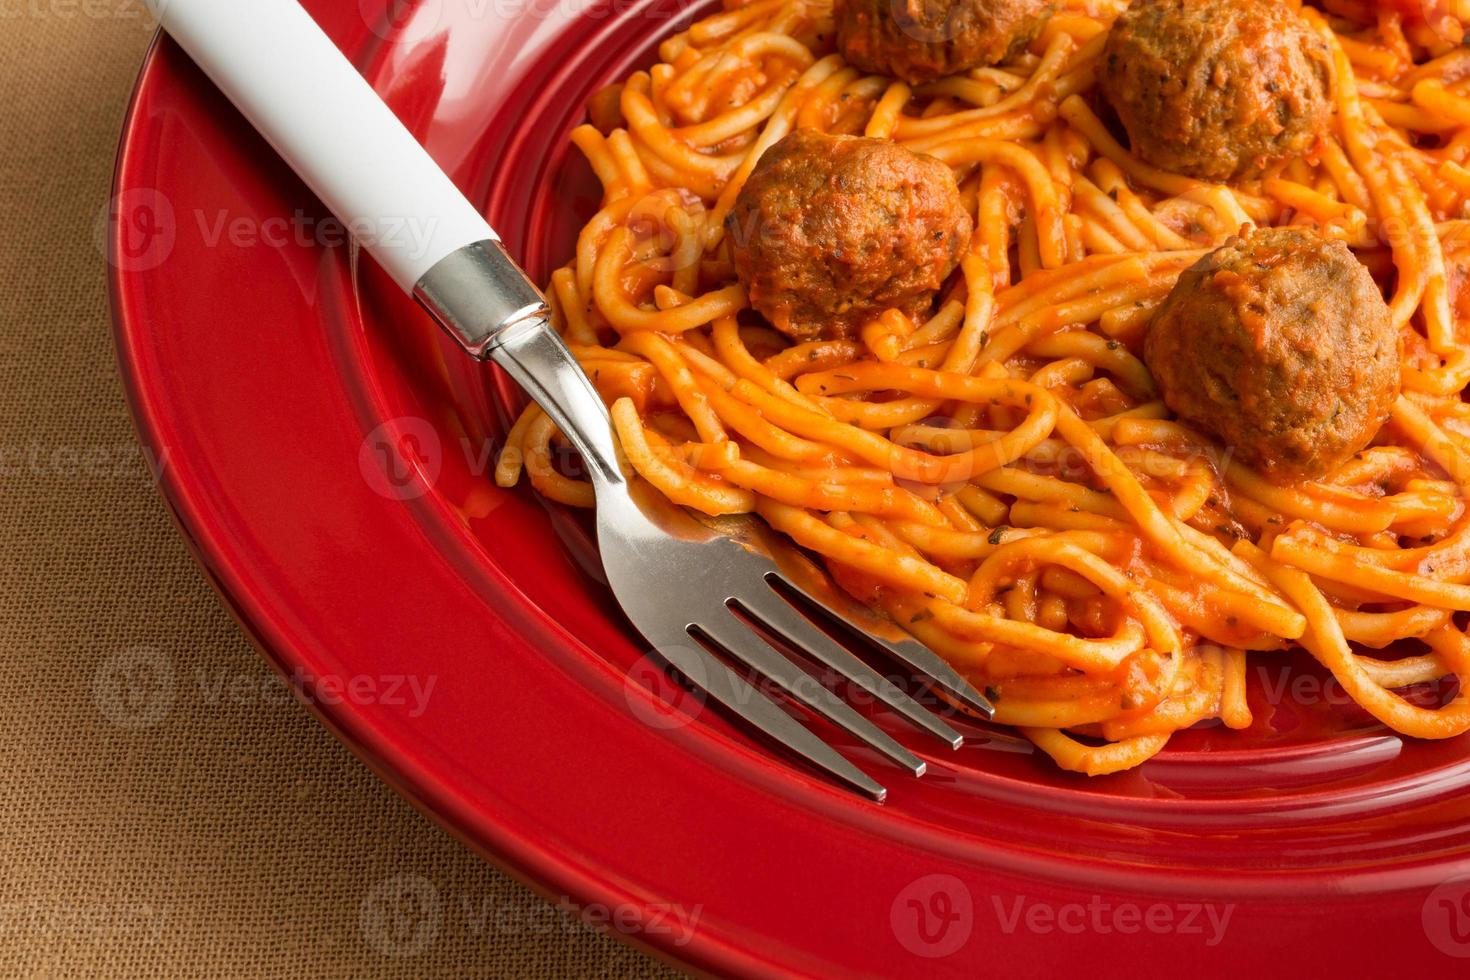 Spaghetti and meatballs on a red dish with fork. photo